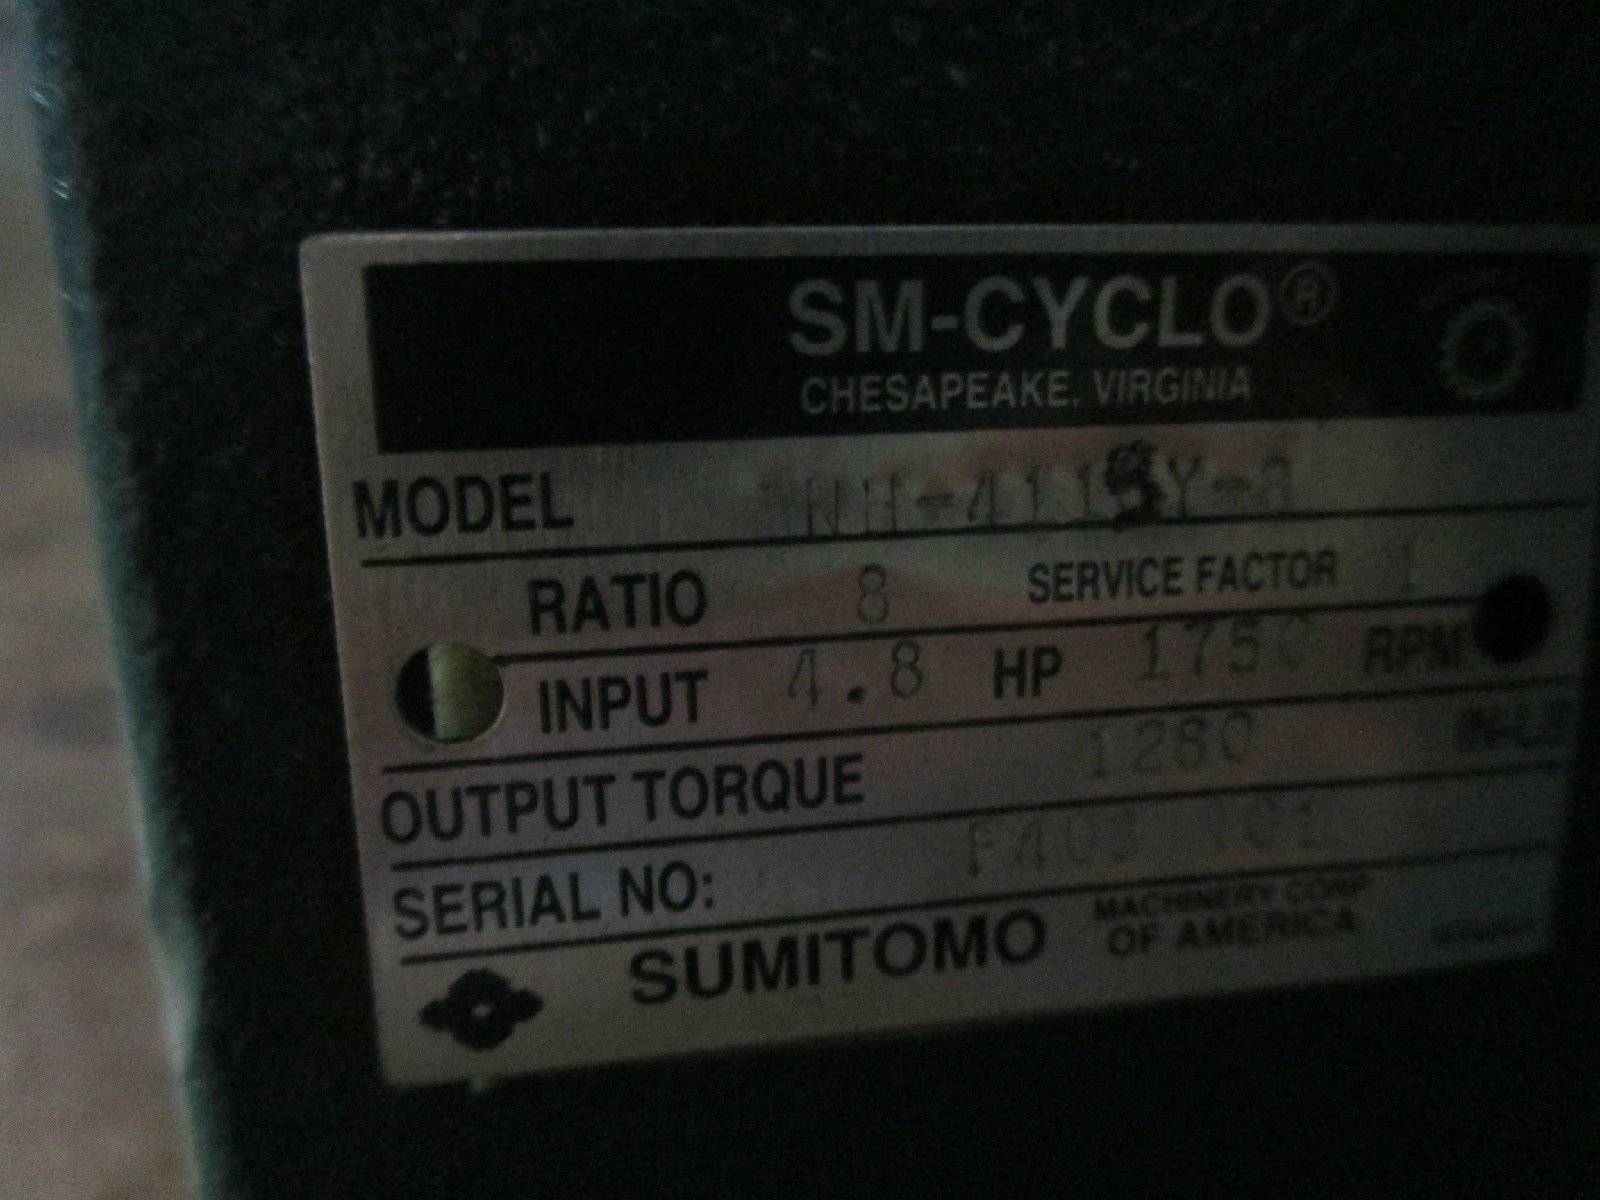 SM CYCLO SUMITOMO CNH 4115Y 3 SPEED REDUCER INDUSTRIAL MADE IN USA GEAR BOX